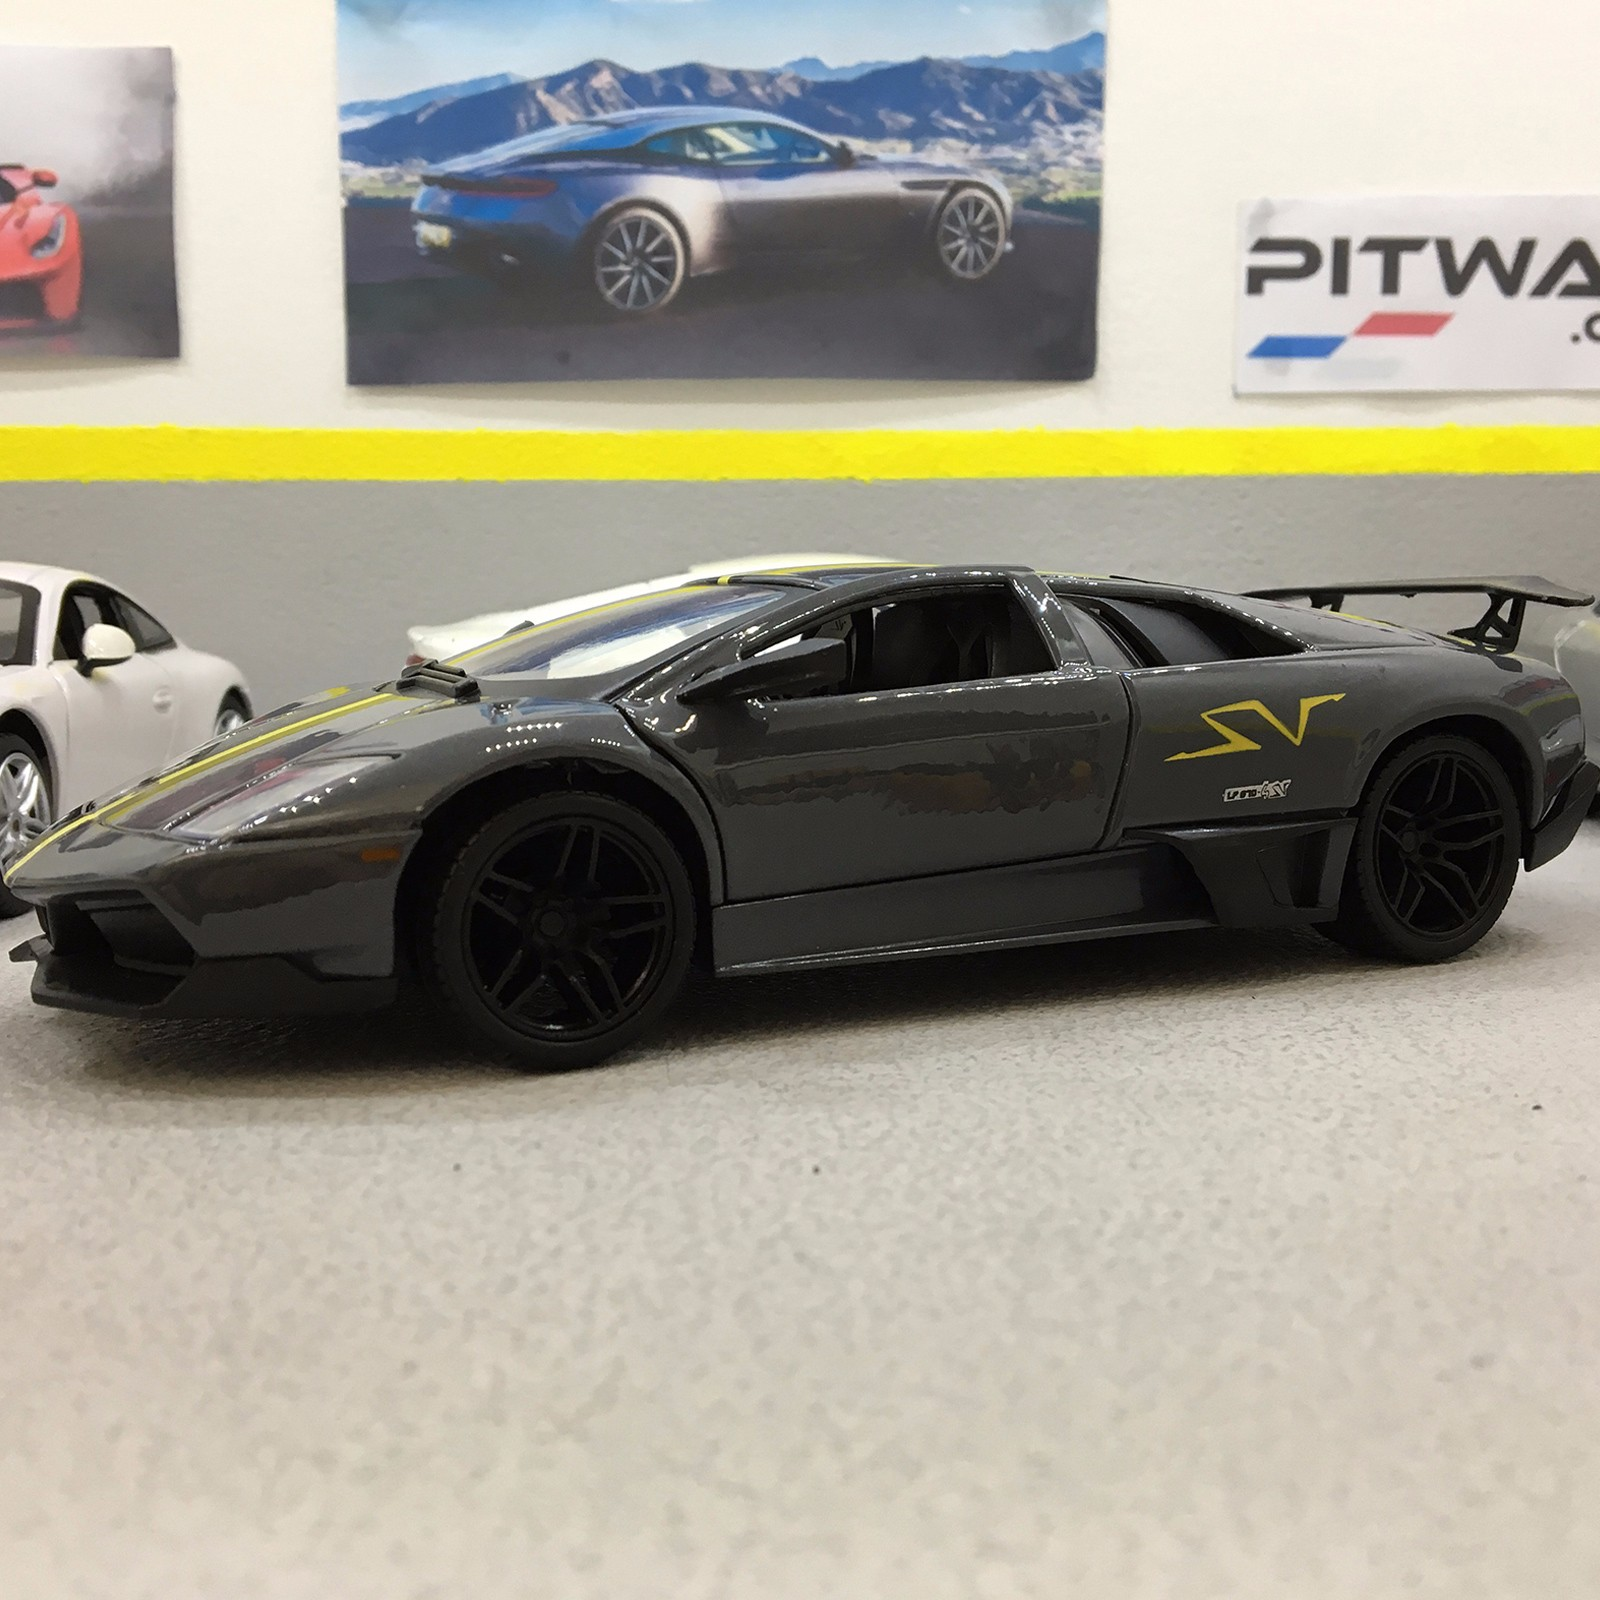 Details About Lamborghini Murcielago Lp 670 4 Sv Grey 1 24 Die Cast Model Car